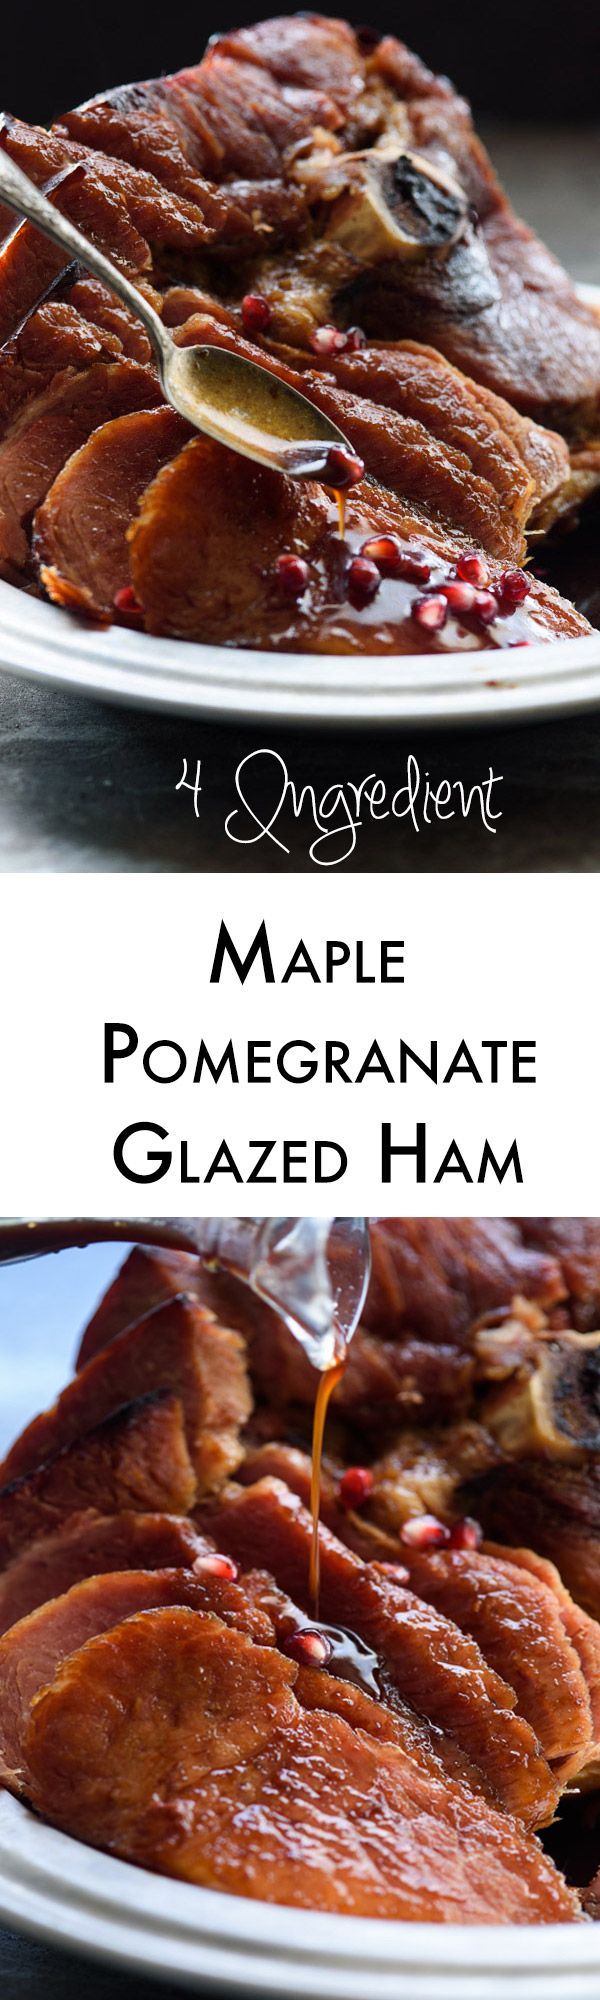 Maple syrup and pomegranate juice make a perfect glaze for a juicy ham. Top it with crunchy pomegranate arils for the perfect finish.